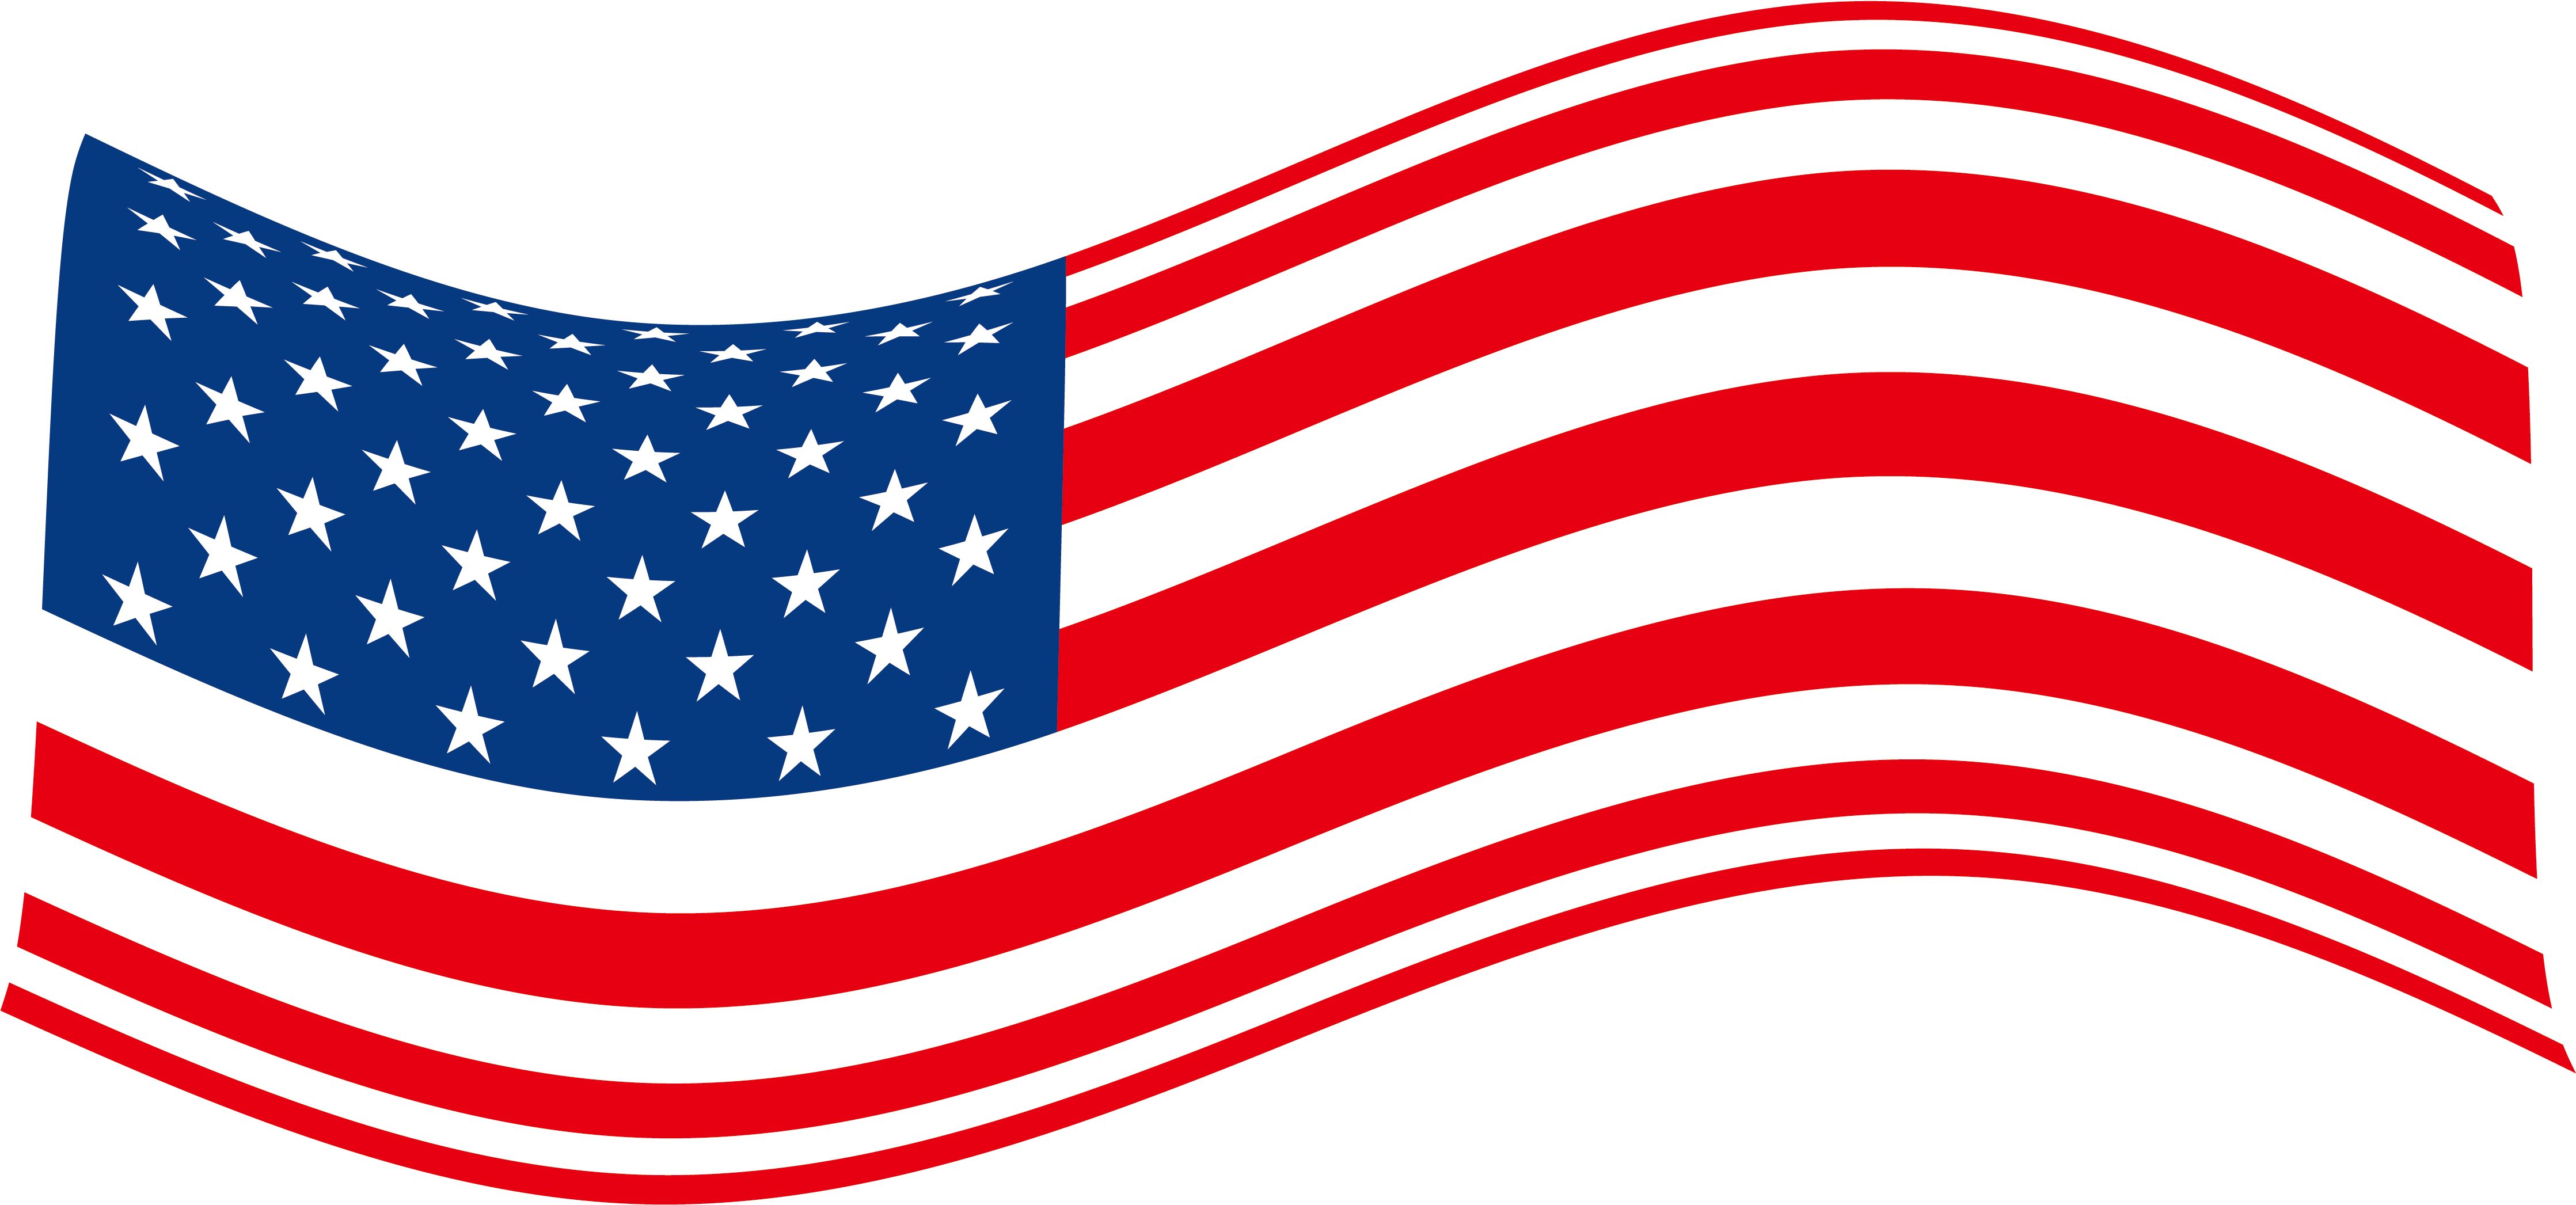 United states of america clipart clip library Flag of the United States Clip art - American flag design 4474*2093 ... clip library